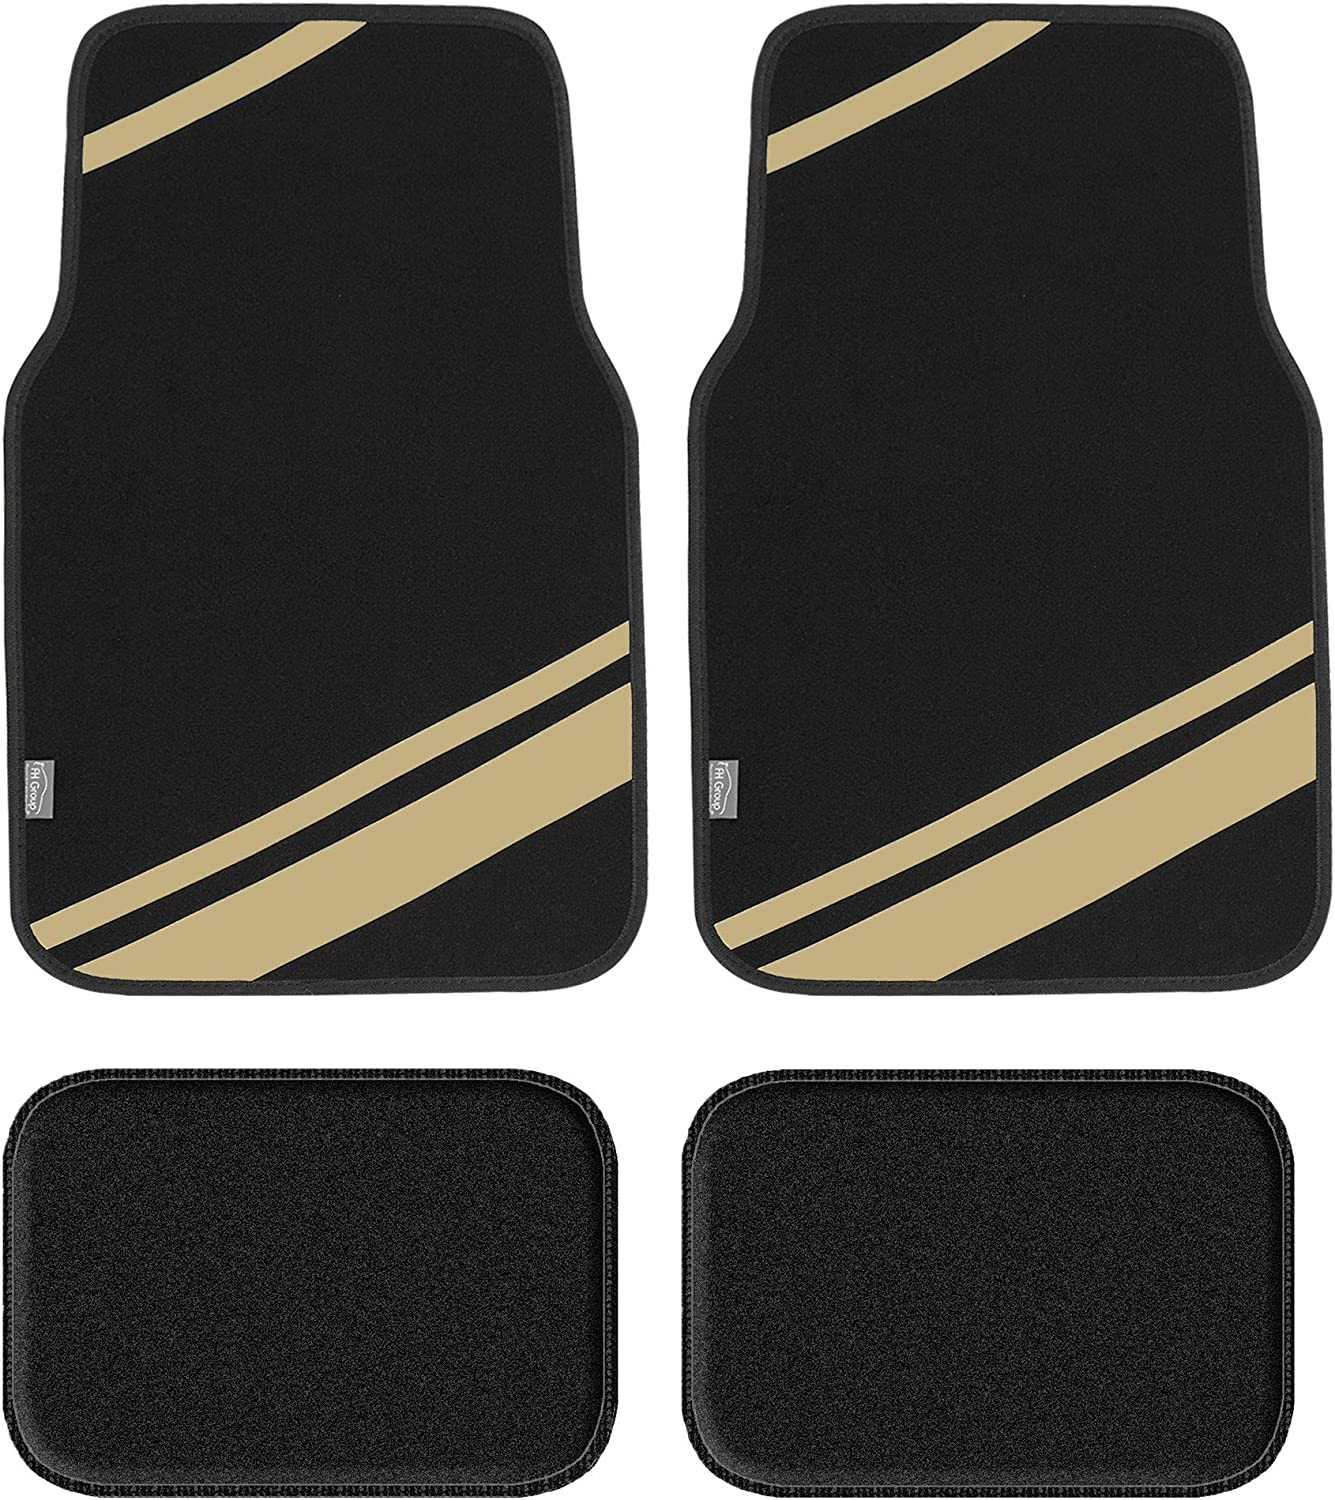 with Faux Leather for Cars, Coupes, Small SUVs FH Group F14501BLACK Universal Fit Carpet Floor Mats Full Set